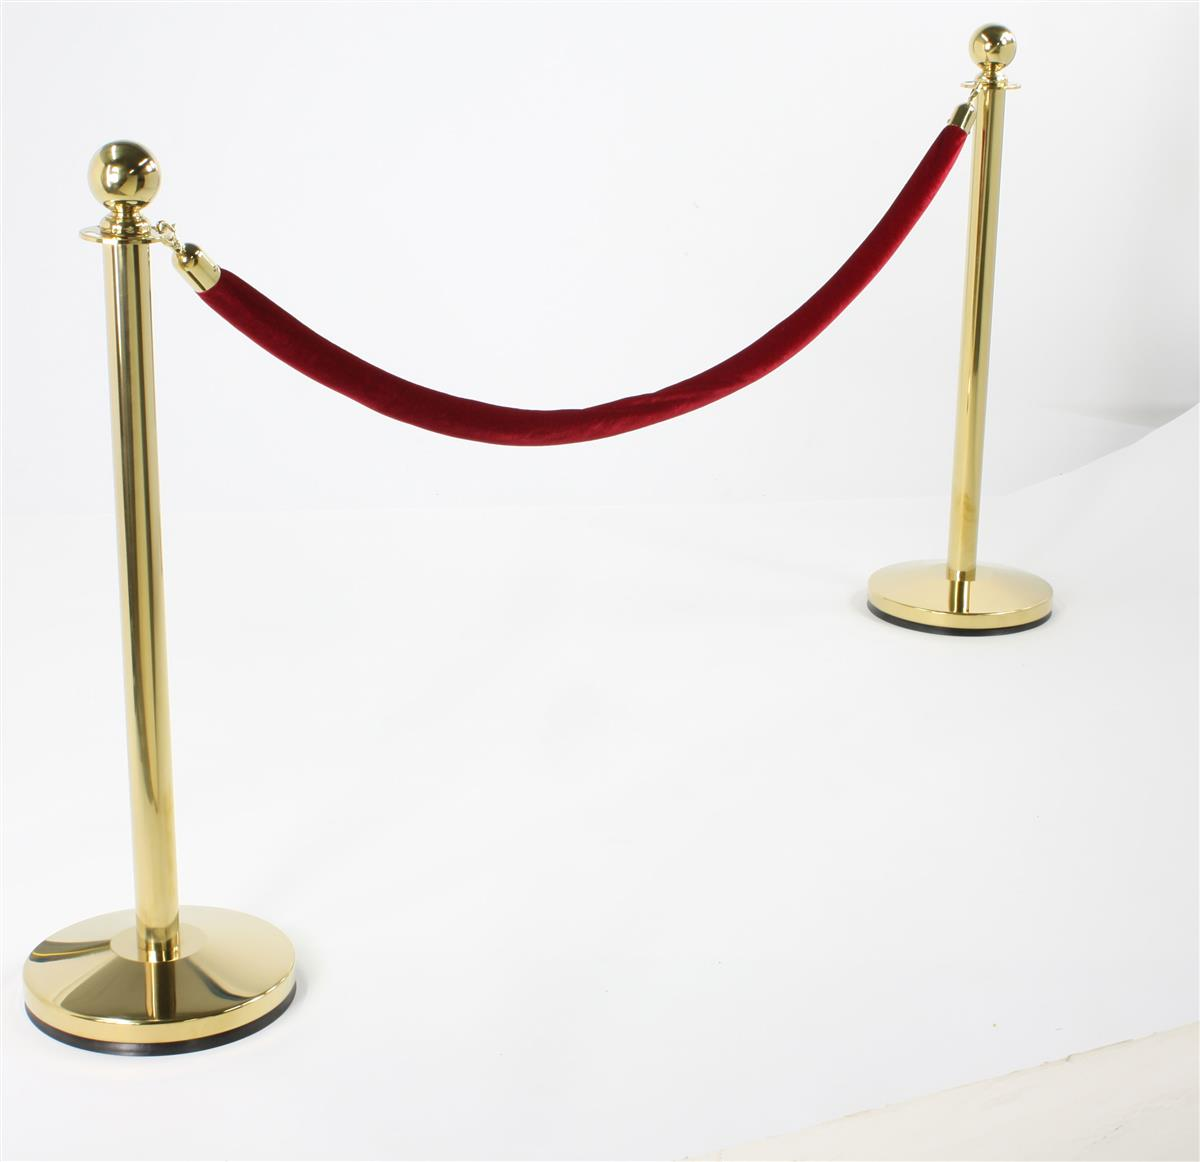 2 Brass Post Stanchions Burgundy Velvet